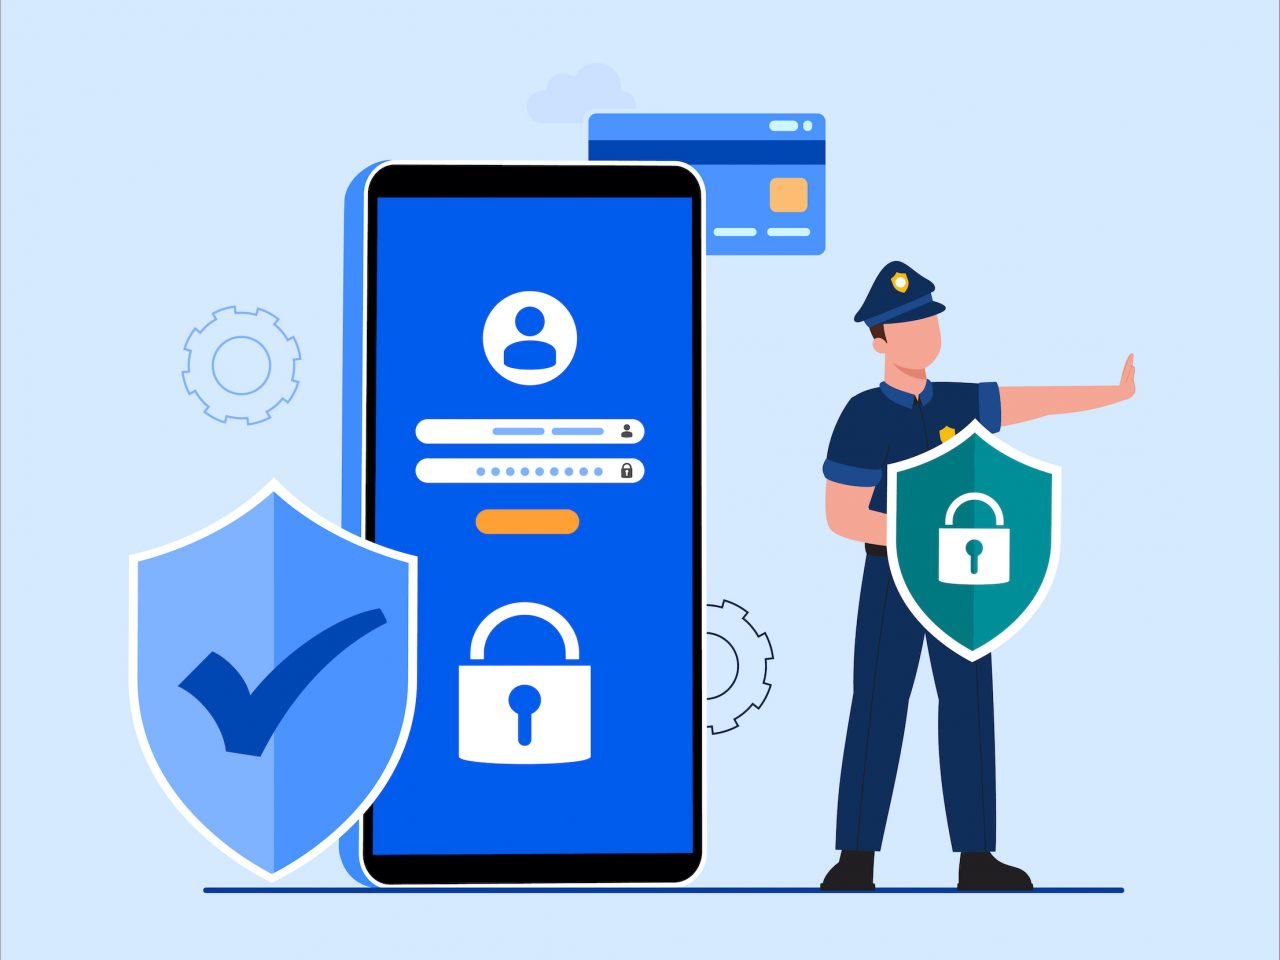 Global data security, personal data security, cyber data security online concept illustration, Internet security or information privacy & protection idea, software access data as confidential, abstract hi speed internet technology. Rendering flat isometric illustration isolated on white background.